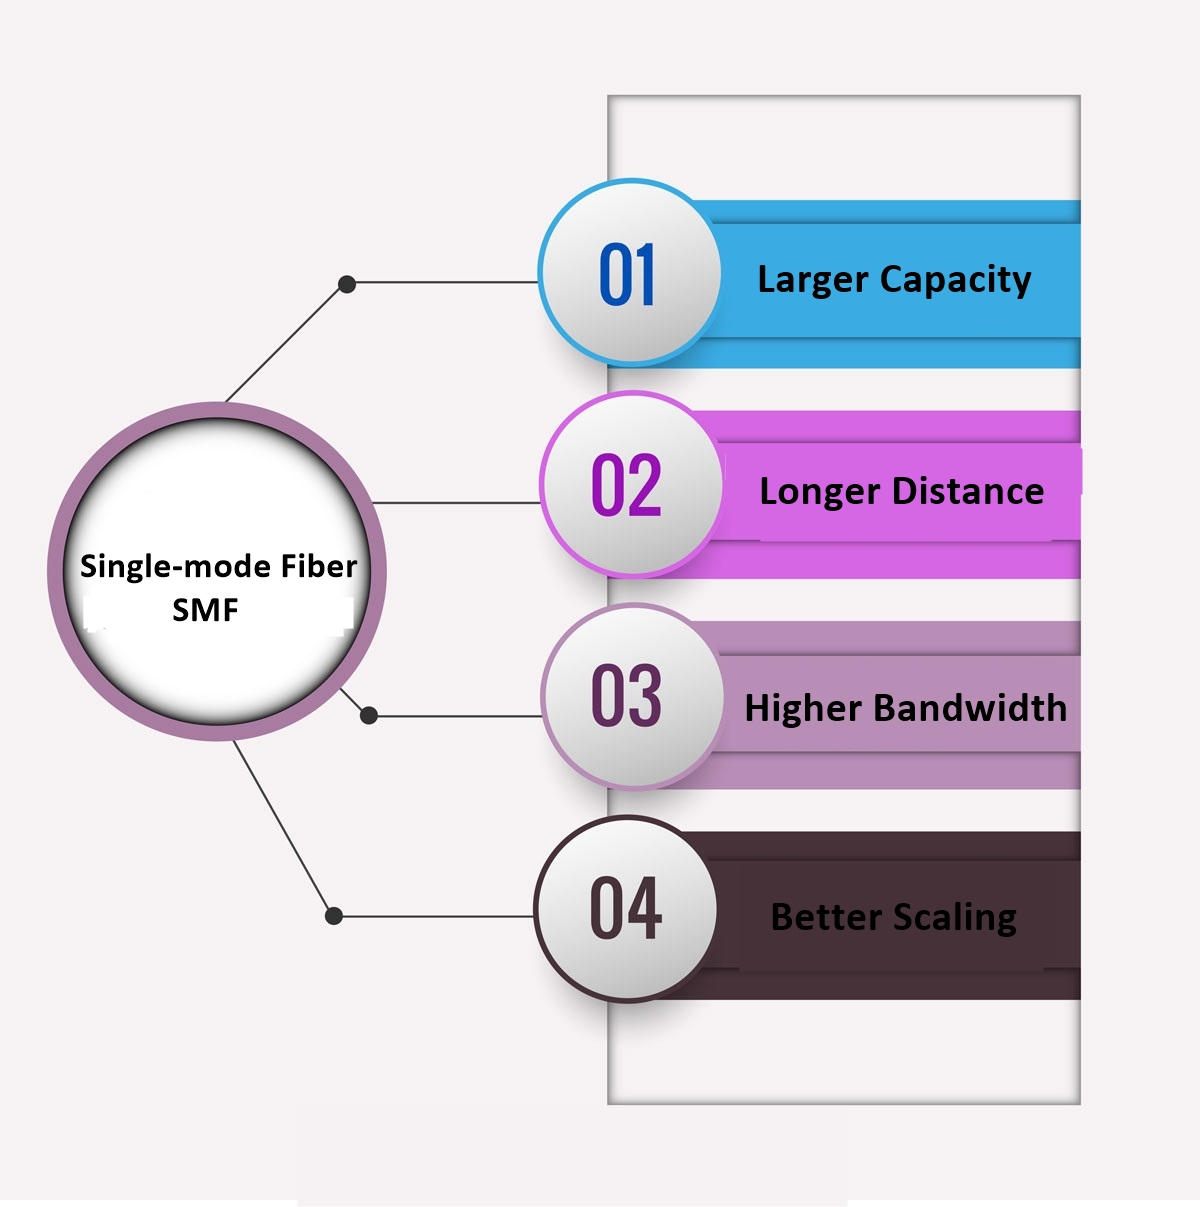 single-mode fiber SMF advantage